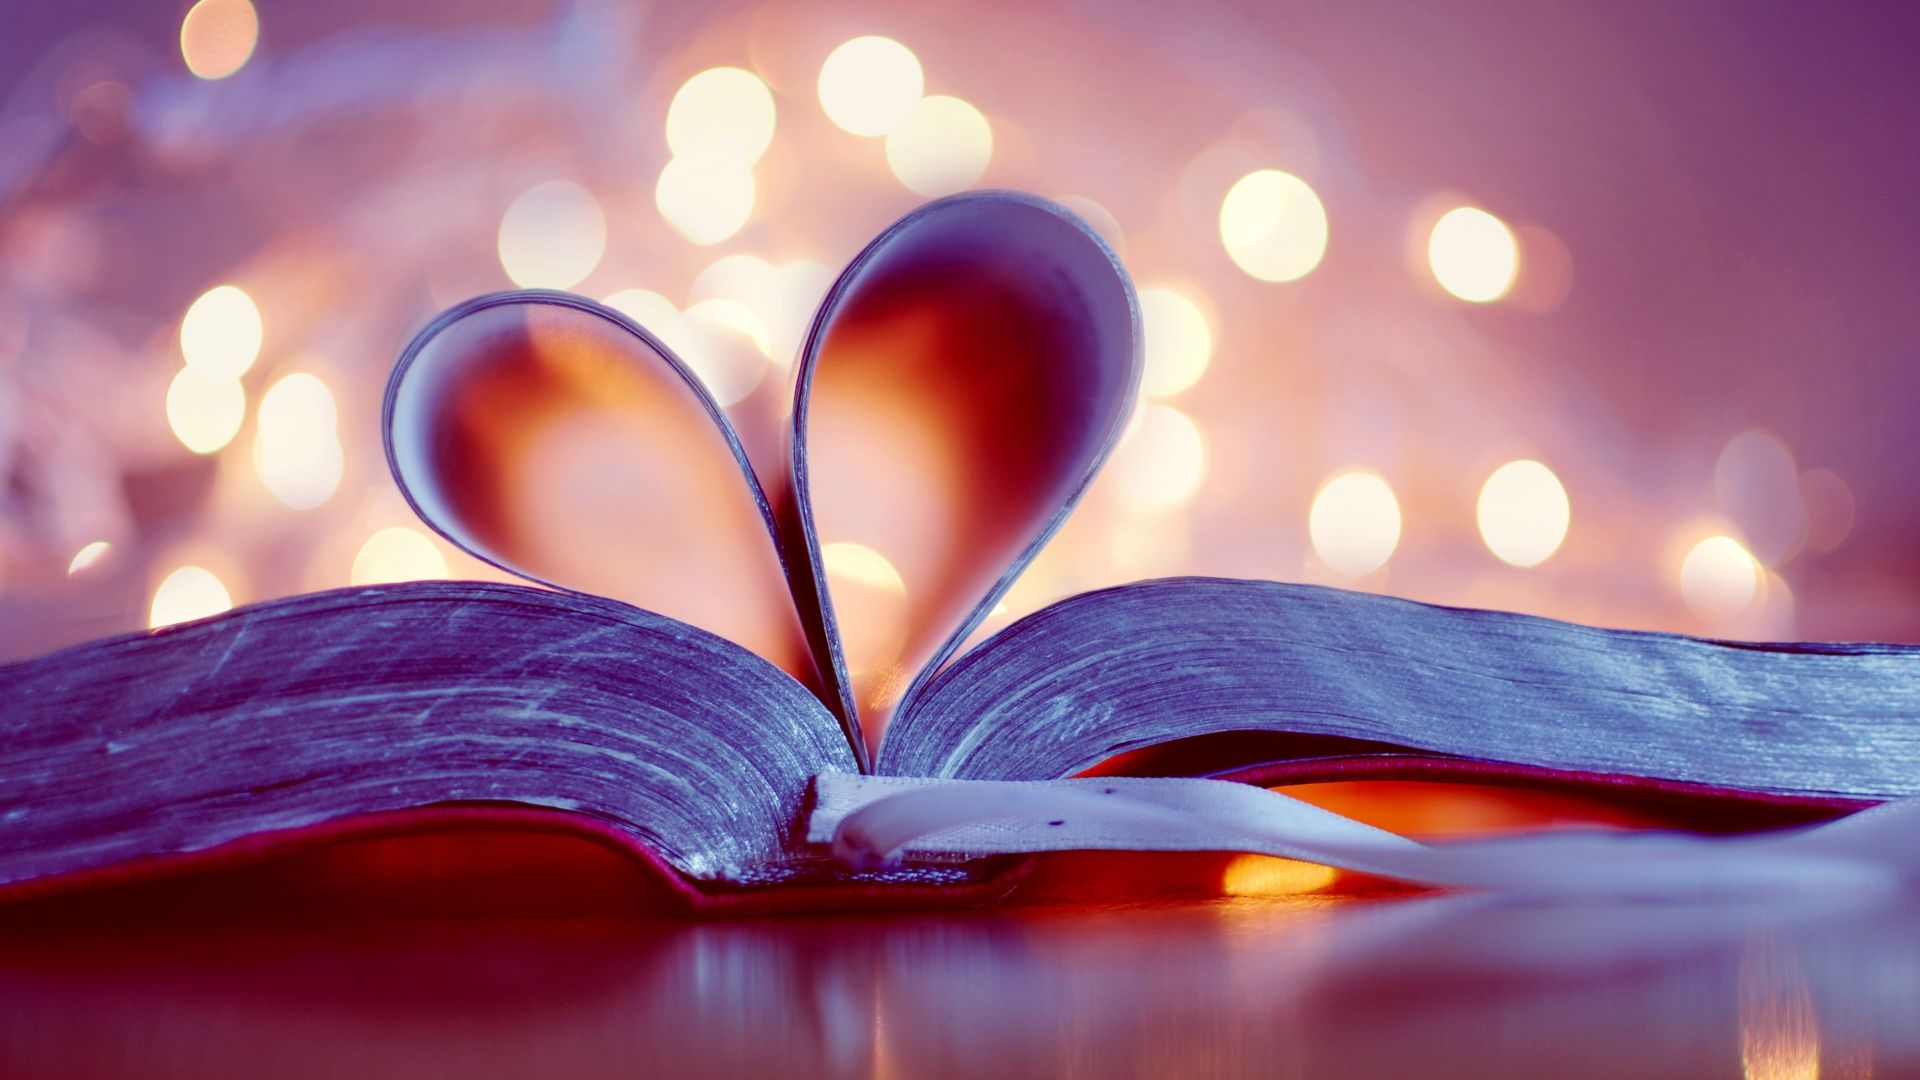 love image, heart, book, 4k (horizontal)